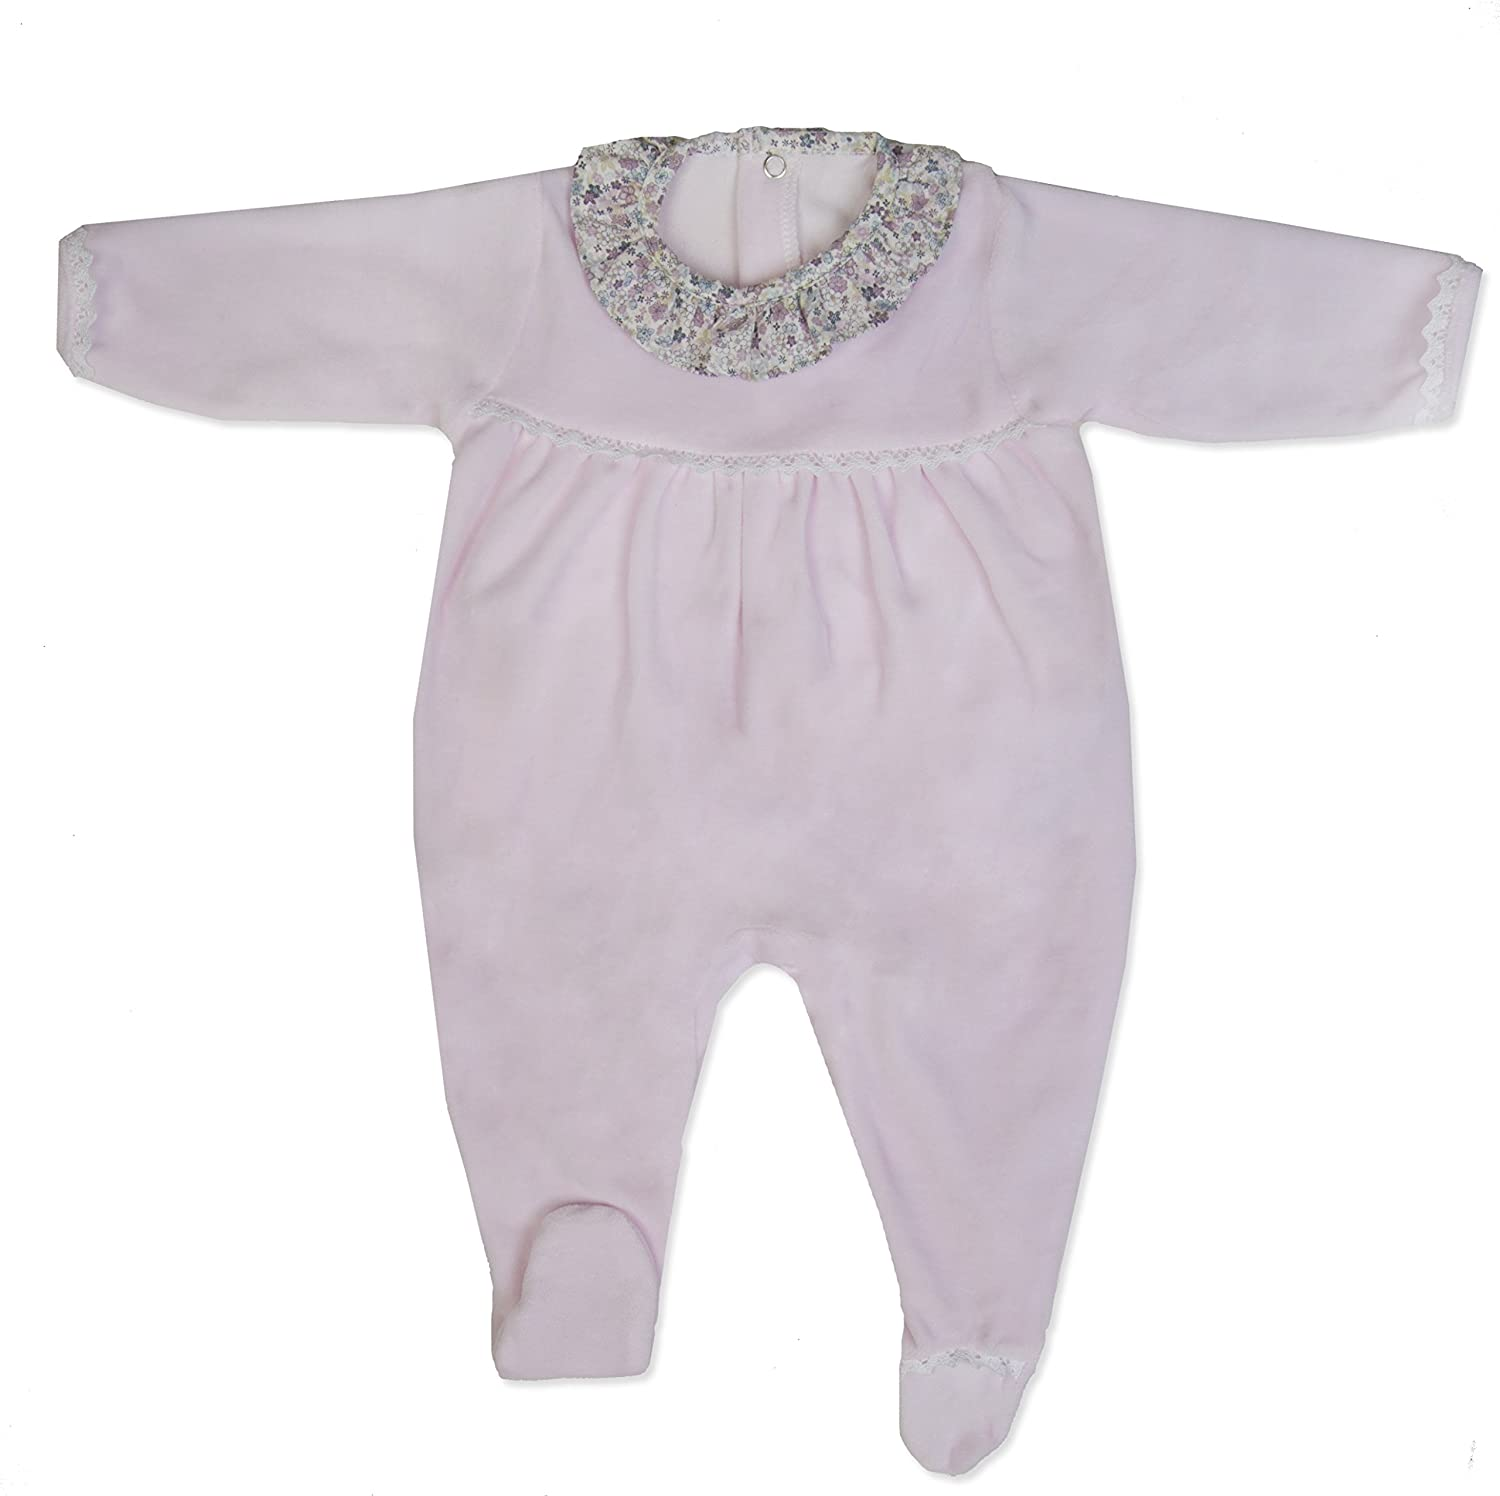 Newborn Baby Girls Cotton Velour Footie Pajamas Sleeper Babysuit Babygrow Push2Posh MN5040VAR